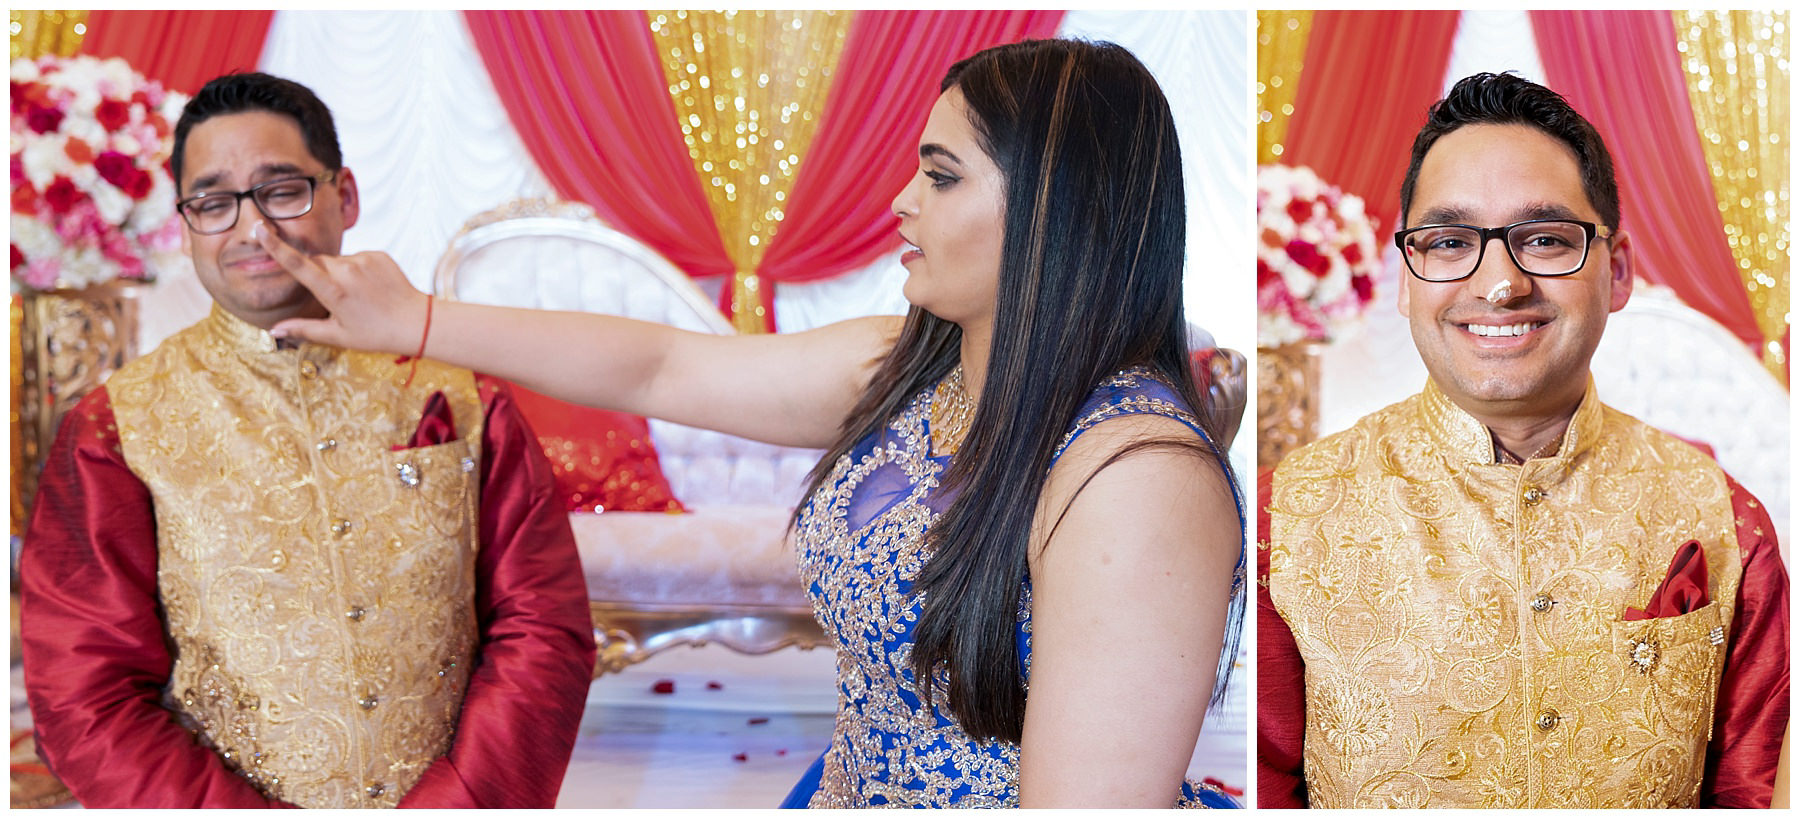 royal-alberts-palace-fords-nj-engagement-vidushi-ankush-29.jpg